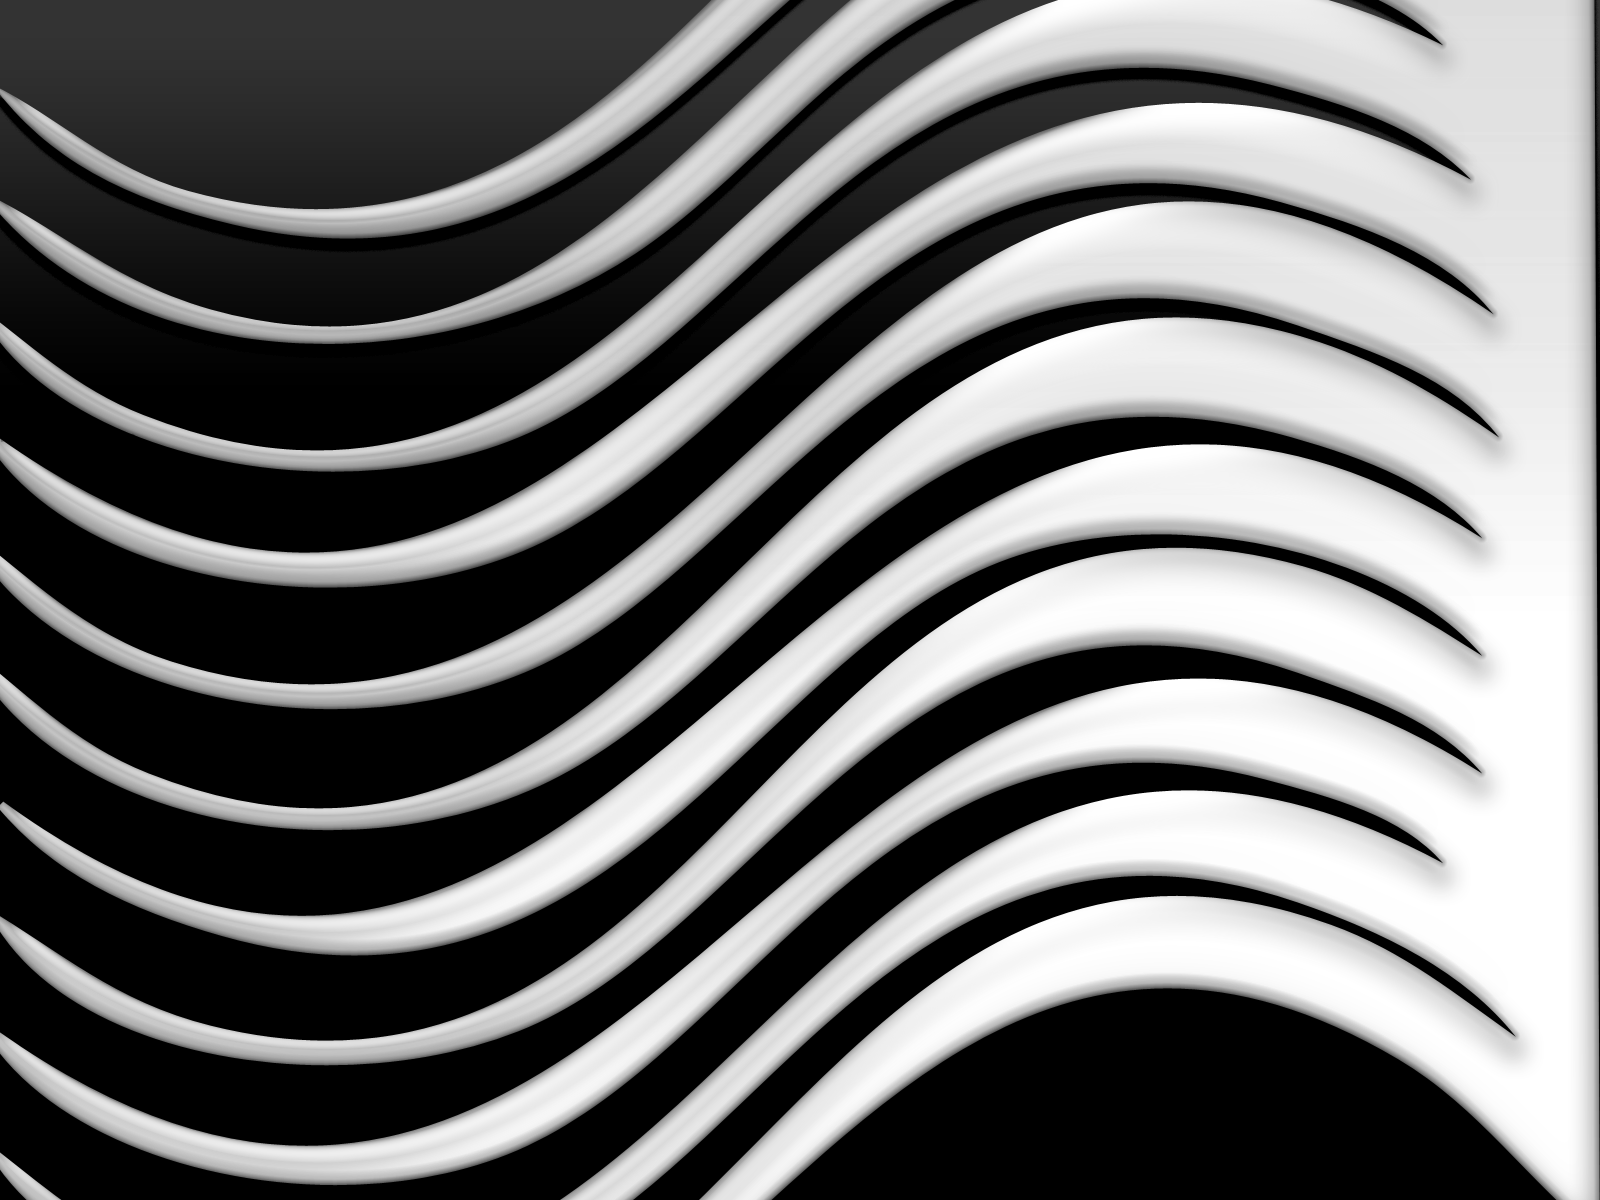 FLMNetwork-whitewave.png (1600×1200) - Black And White Wave PNG